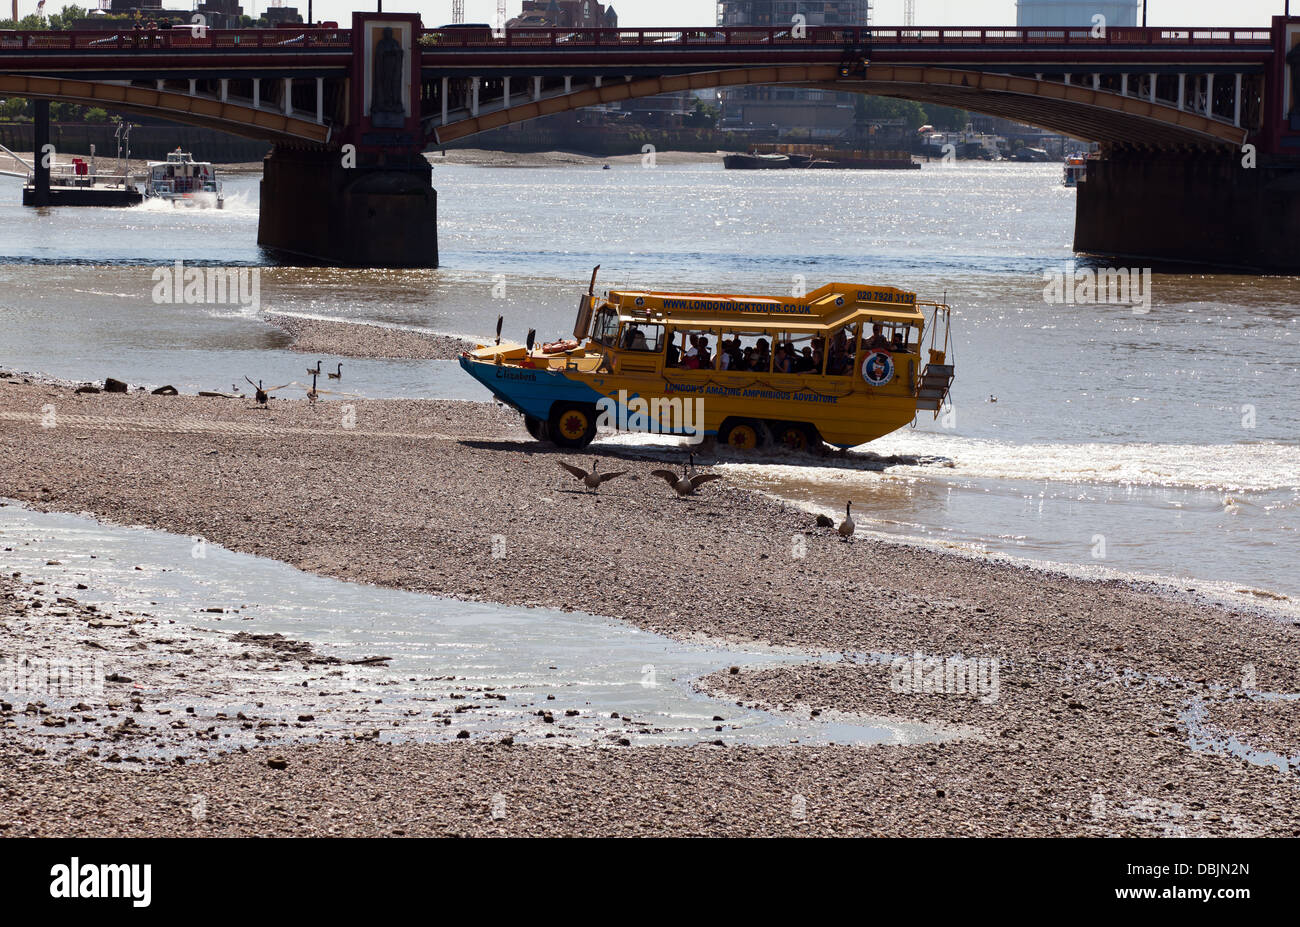 A WWII DUKW emerging from the Thames just below Vauxhall Bridge. Part of a London Duck tour. - Stock Image